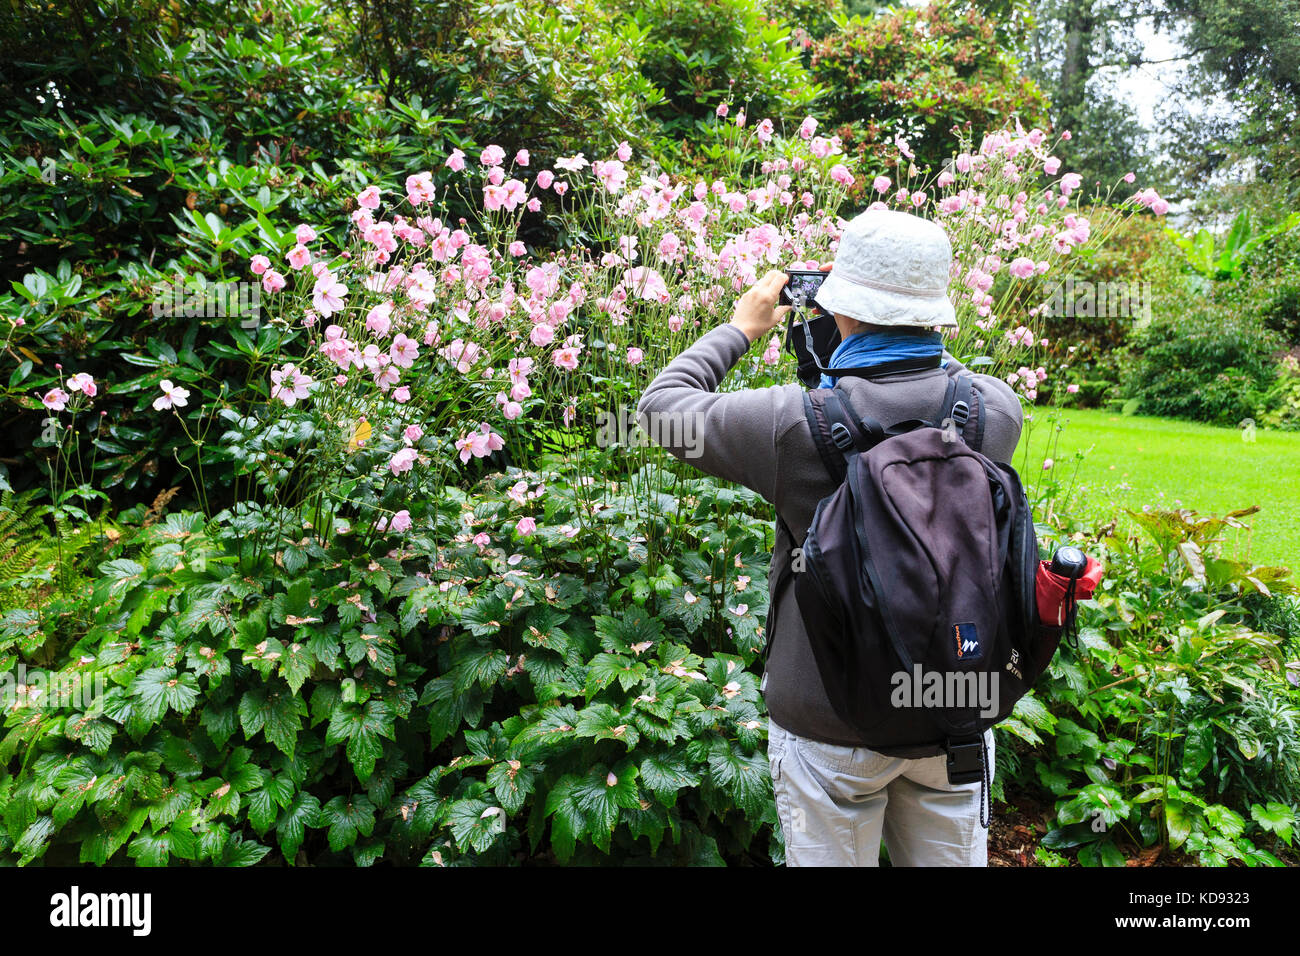 Labelle stock photos labelle stock images alamy for Jardin remarquable 06